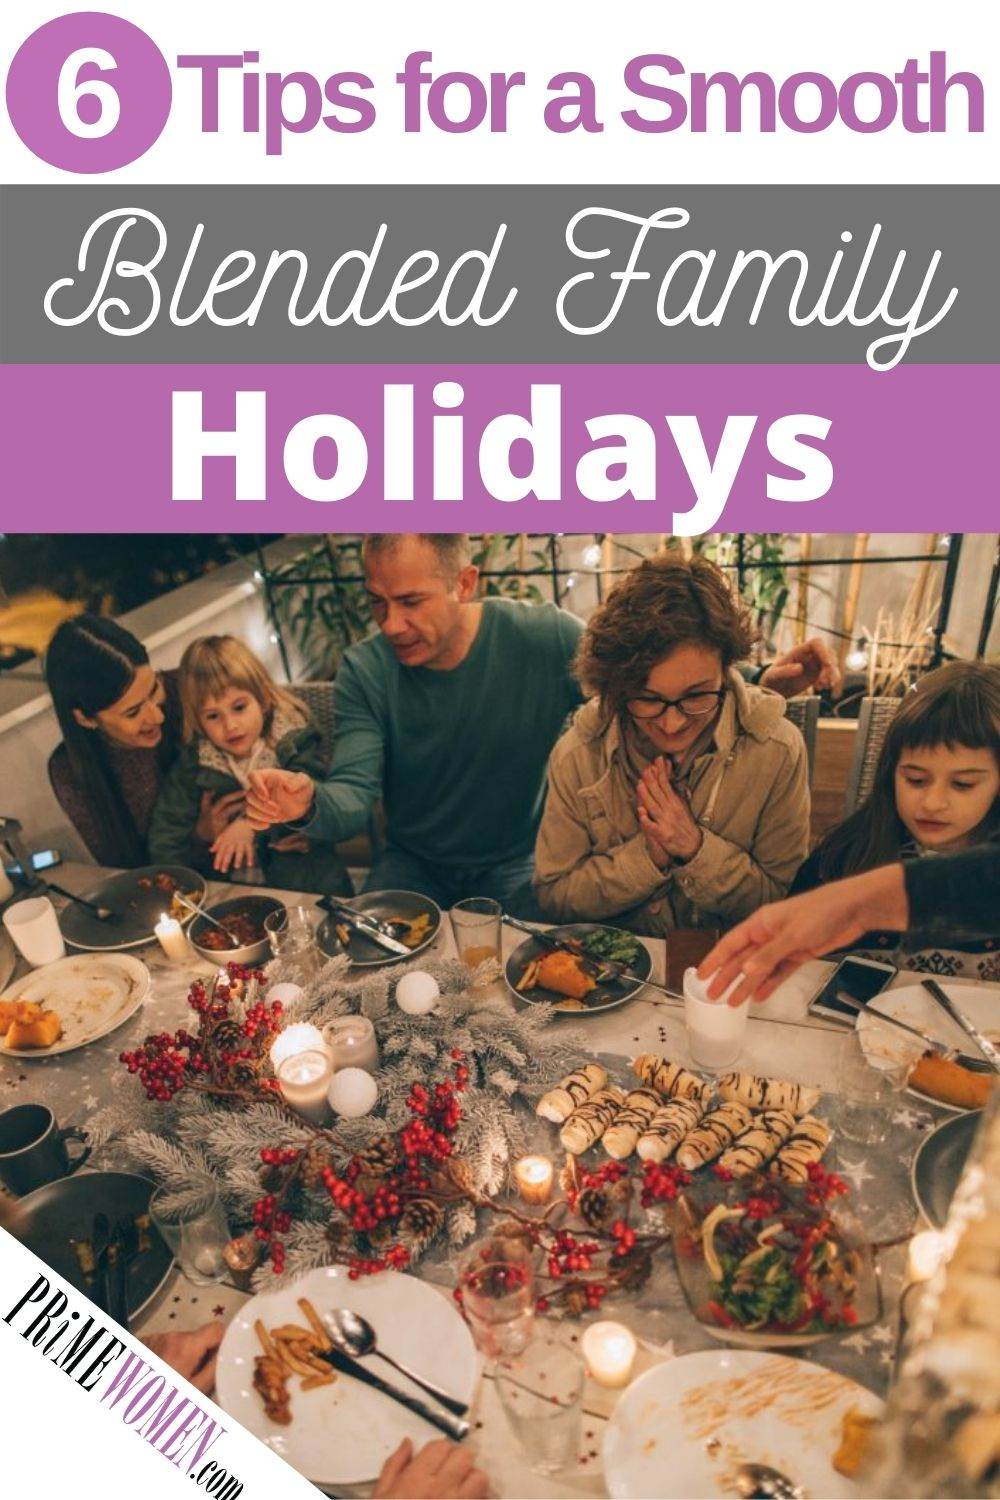 6 Tips for a smooth blended family holiday gathering